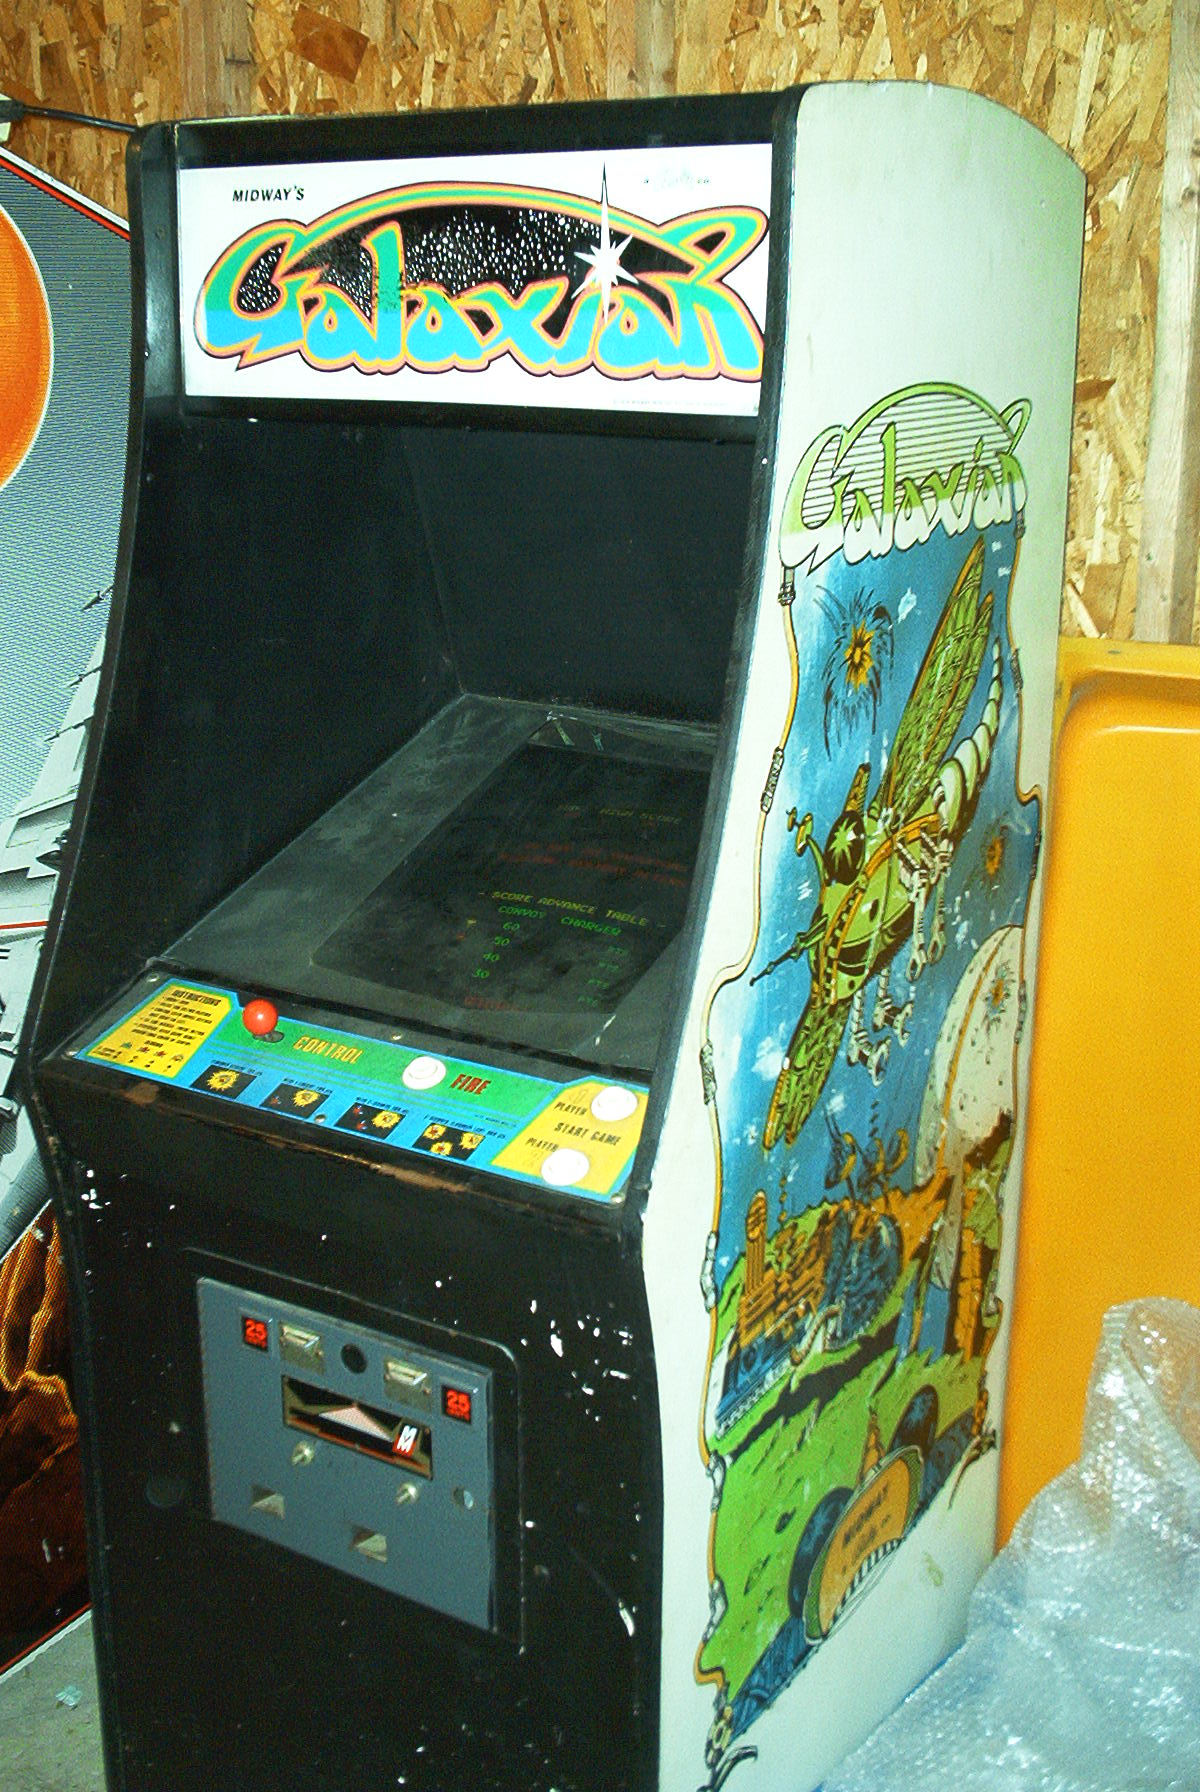 Lost Arcade Classics The Galaxian Story Midway 1979